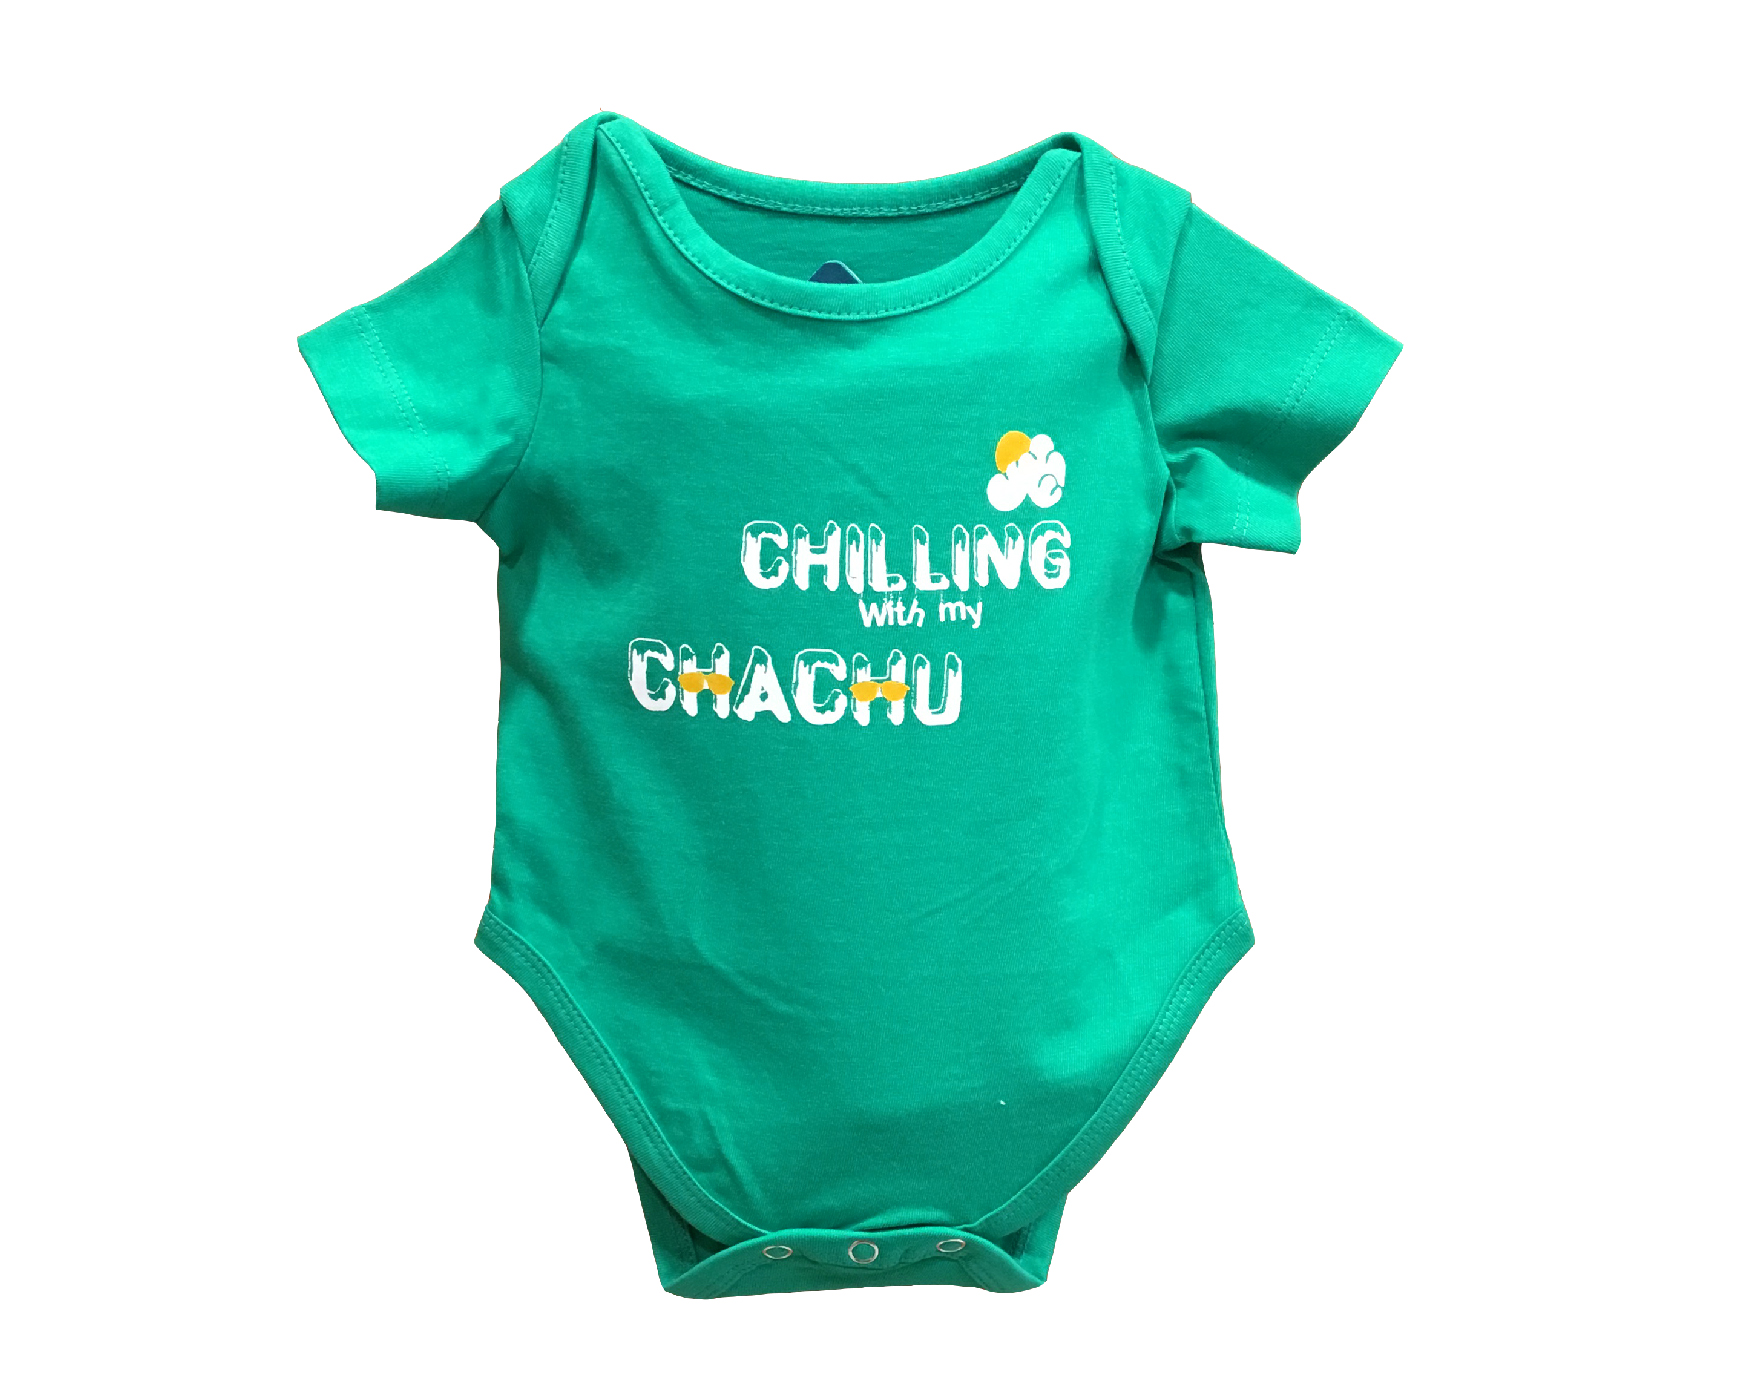 CHILLING-WITH-CHACHU.jpg